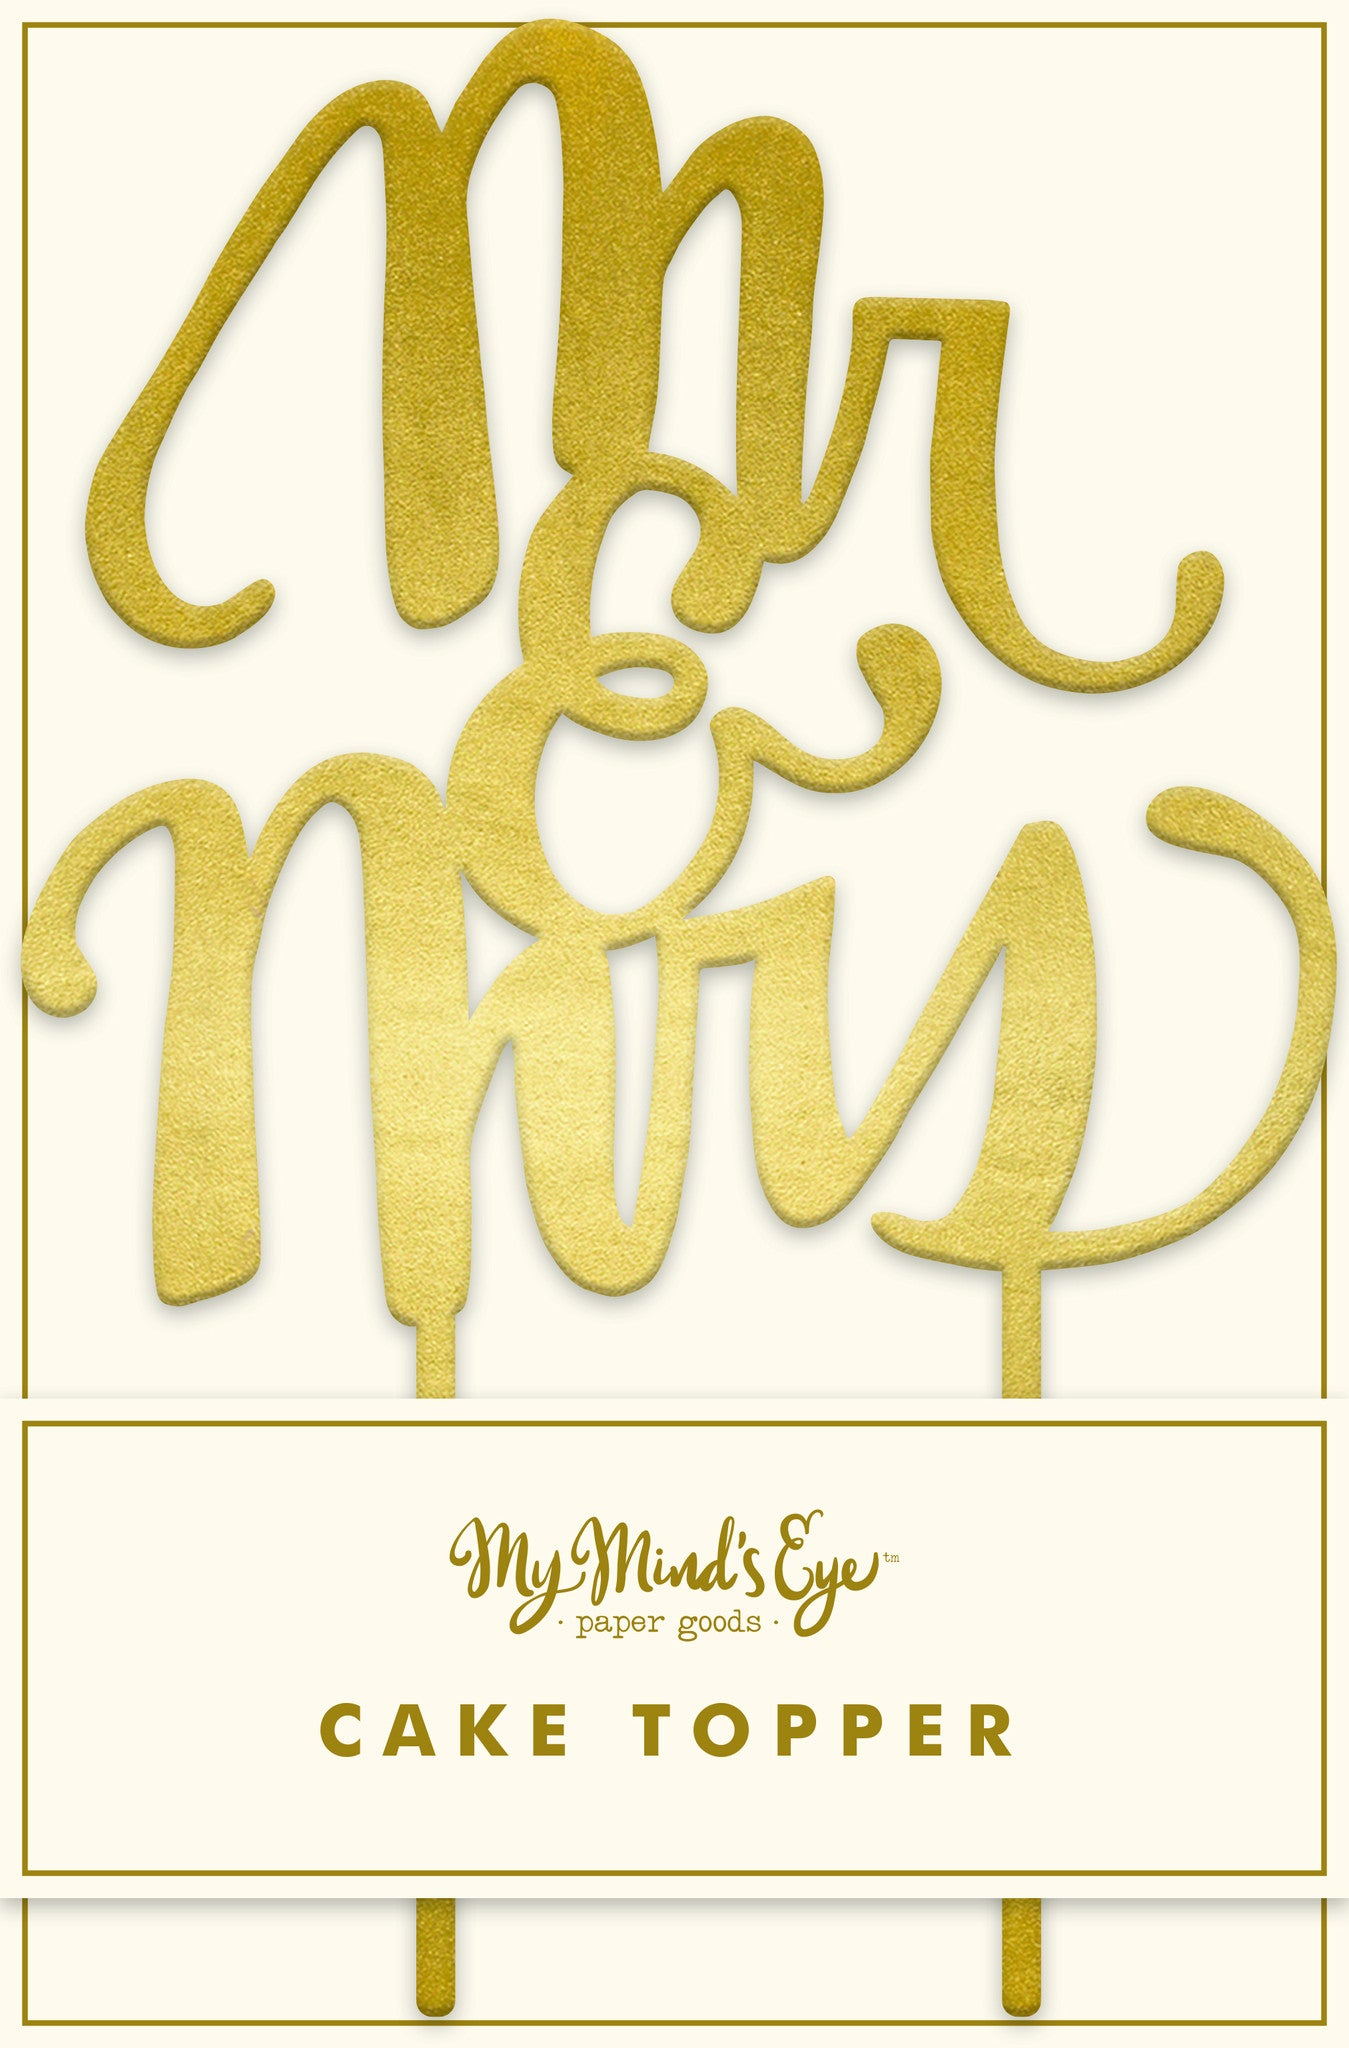 My Minds Eye Paper Goods CAKE TOPPER-MR&MRS